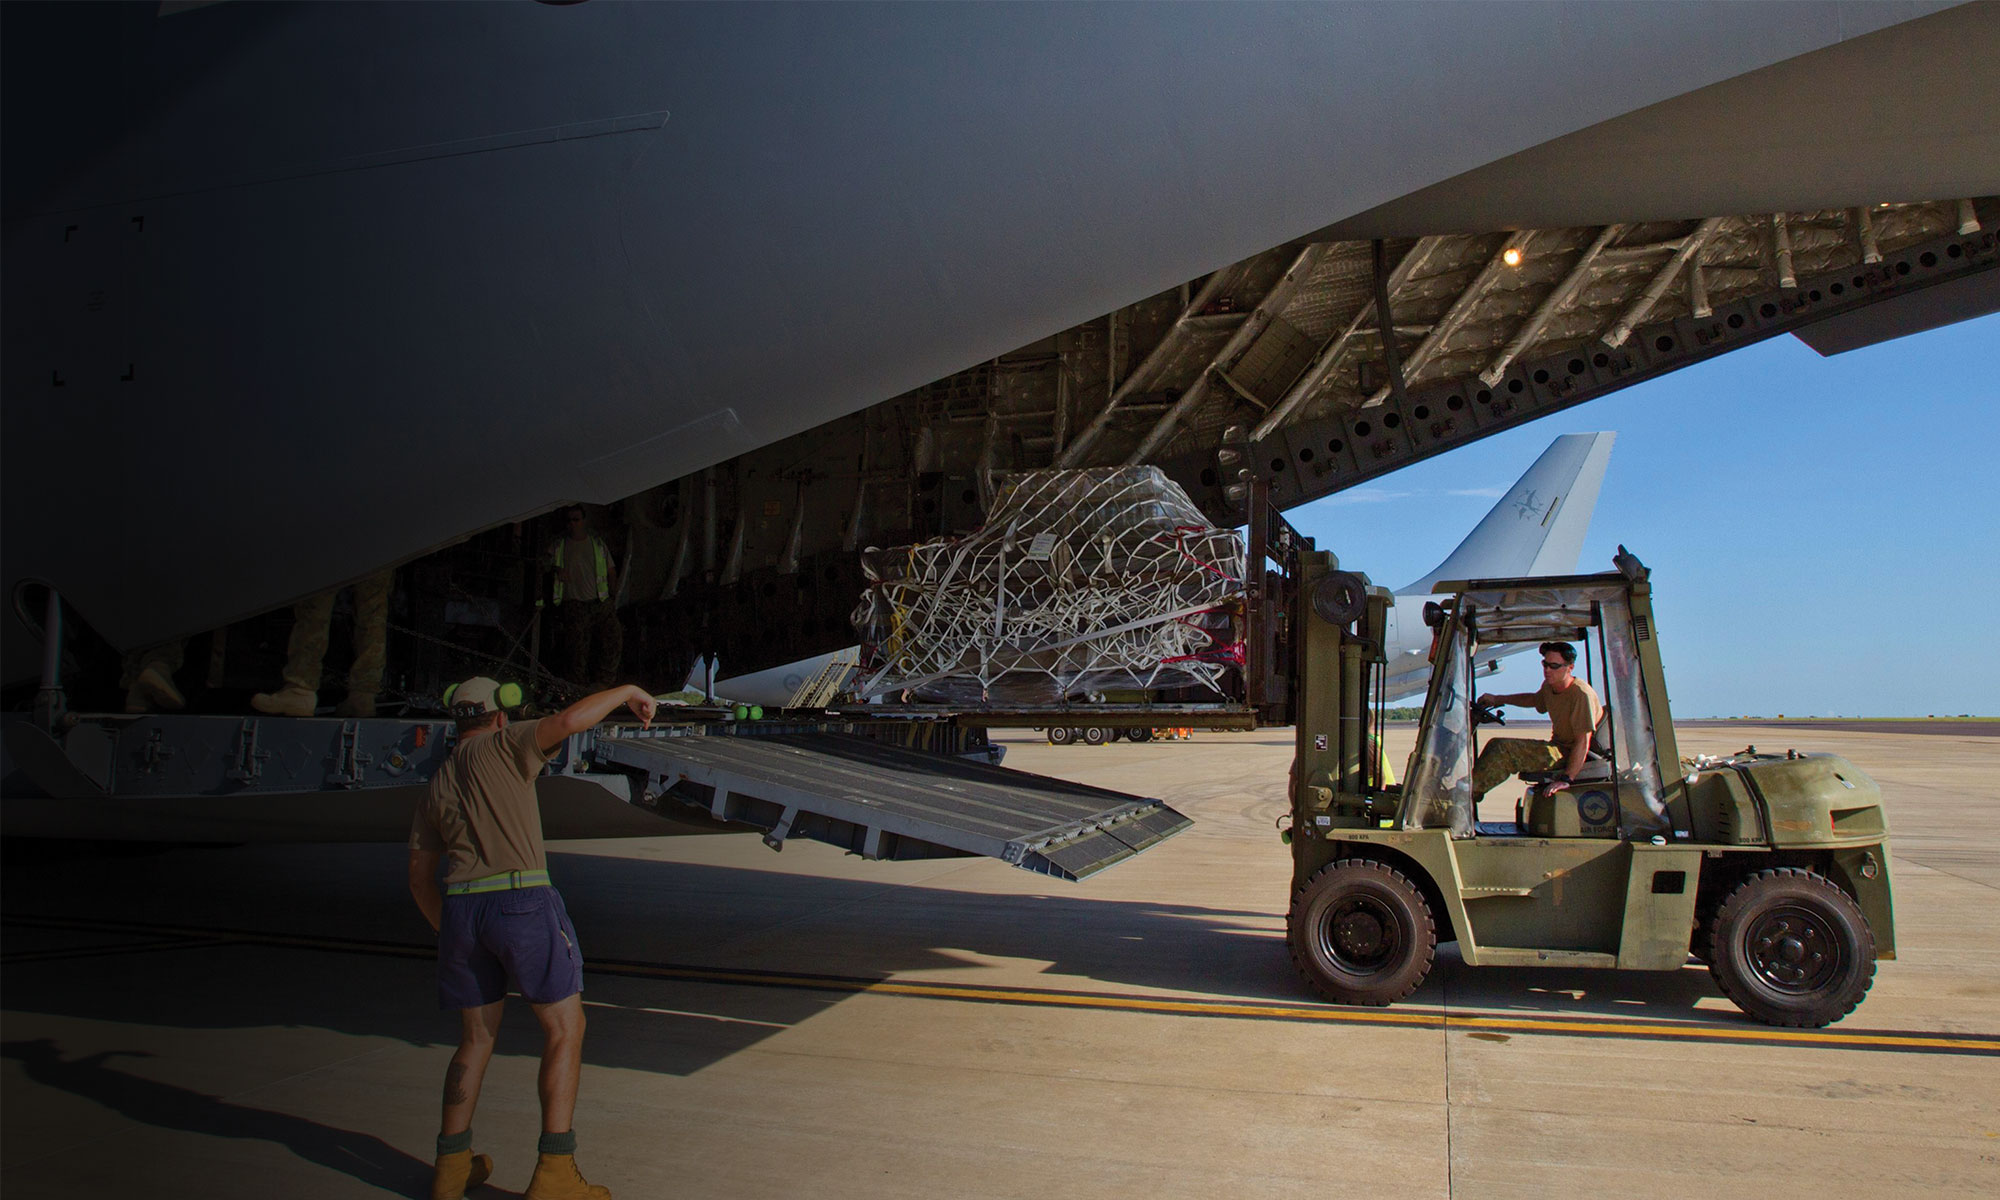 Our military pallet nets provides a range of solutions to restrain palletised cargo. Approved by the US DoD Air Transportability Agency (ATTLA) for use on a variety of military cargo aircraft.